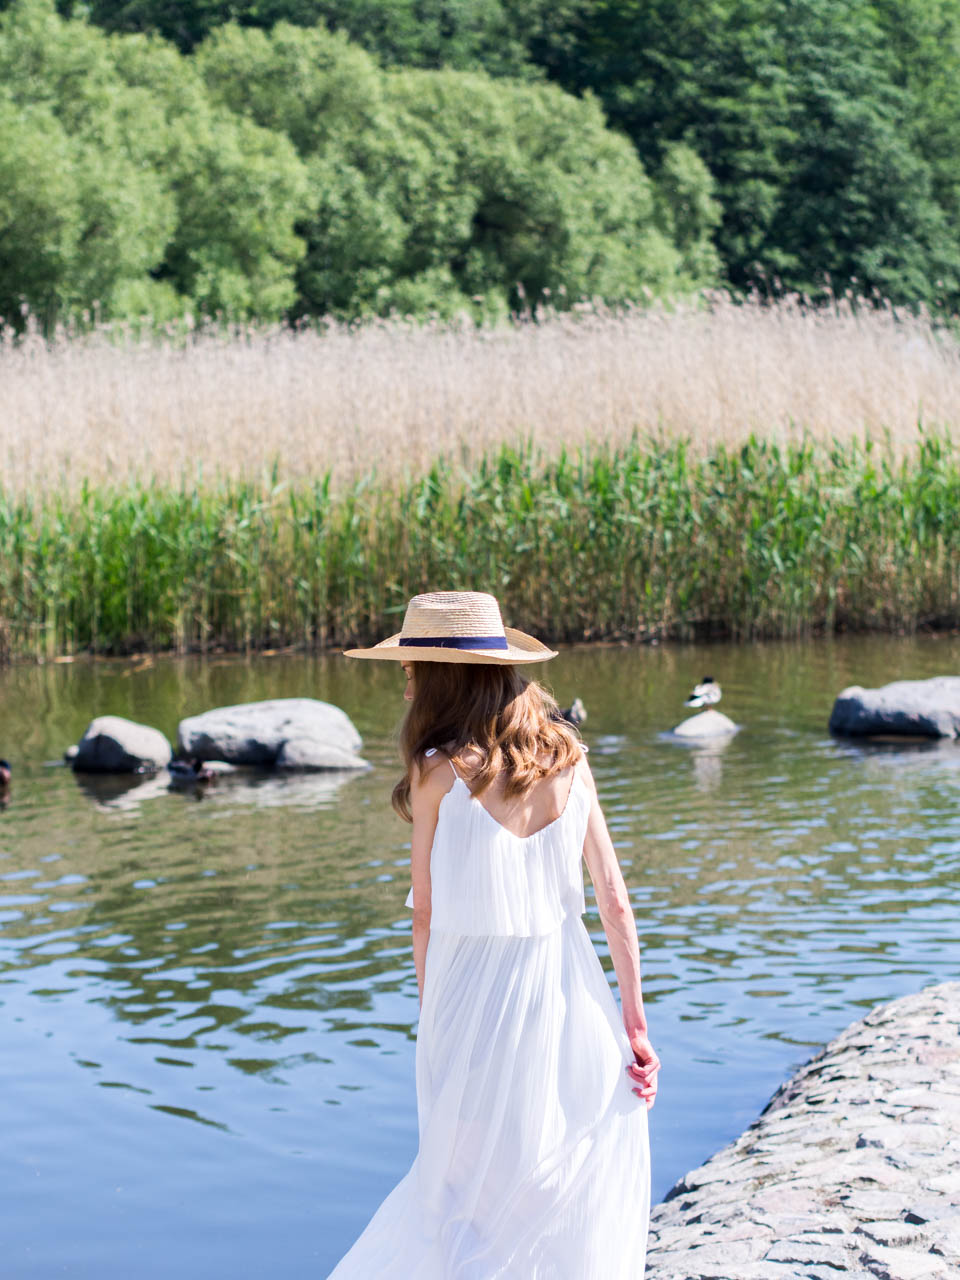 juhannus-midsummer-2019-fashion-blogger-summer-photoshoot-lake-töölönlahti-helsinki